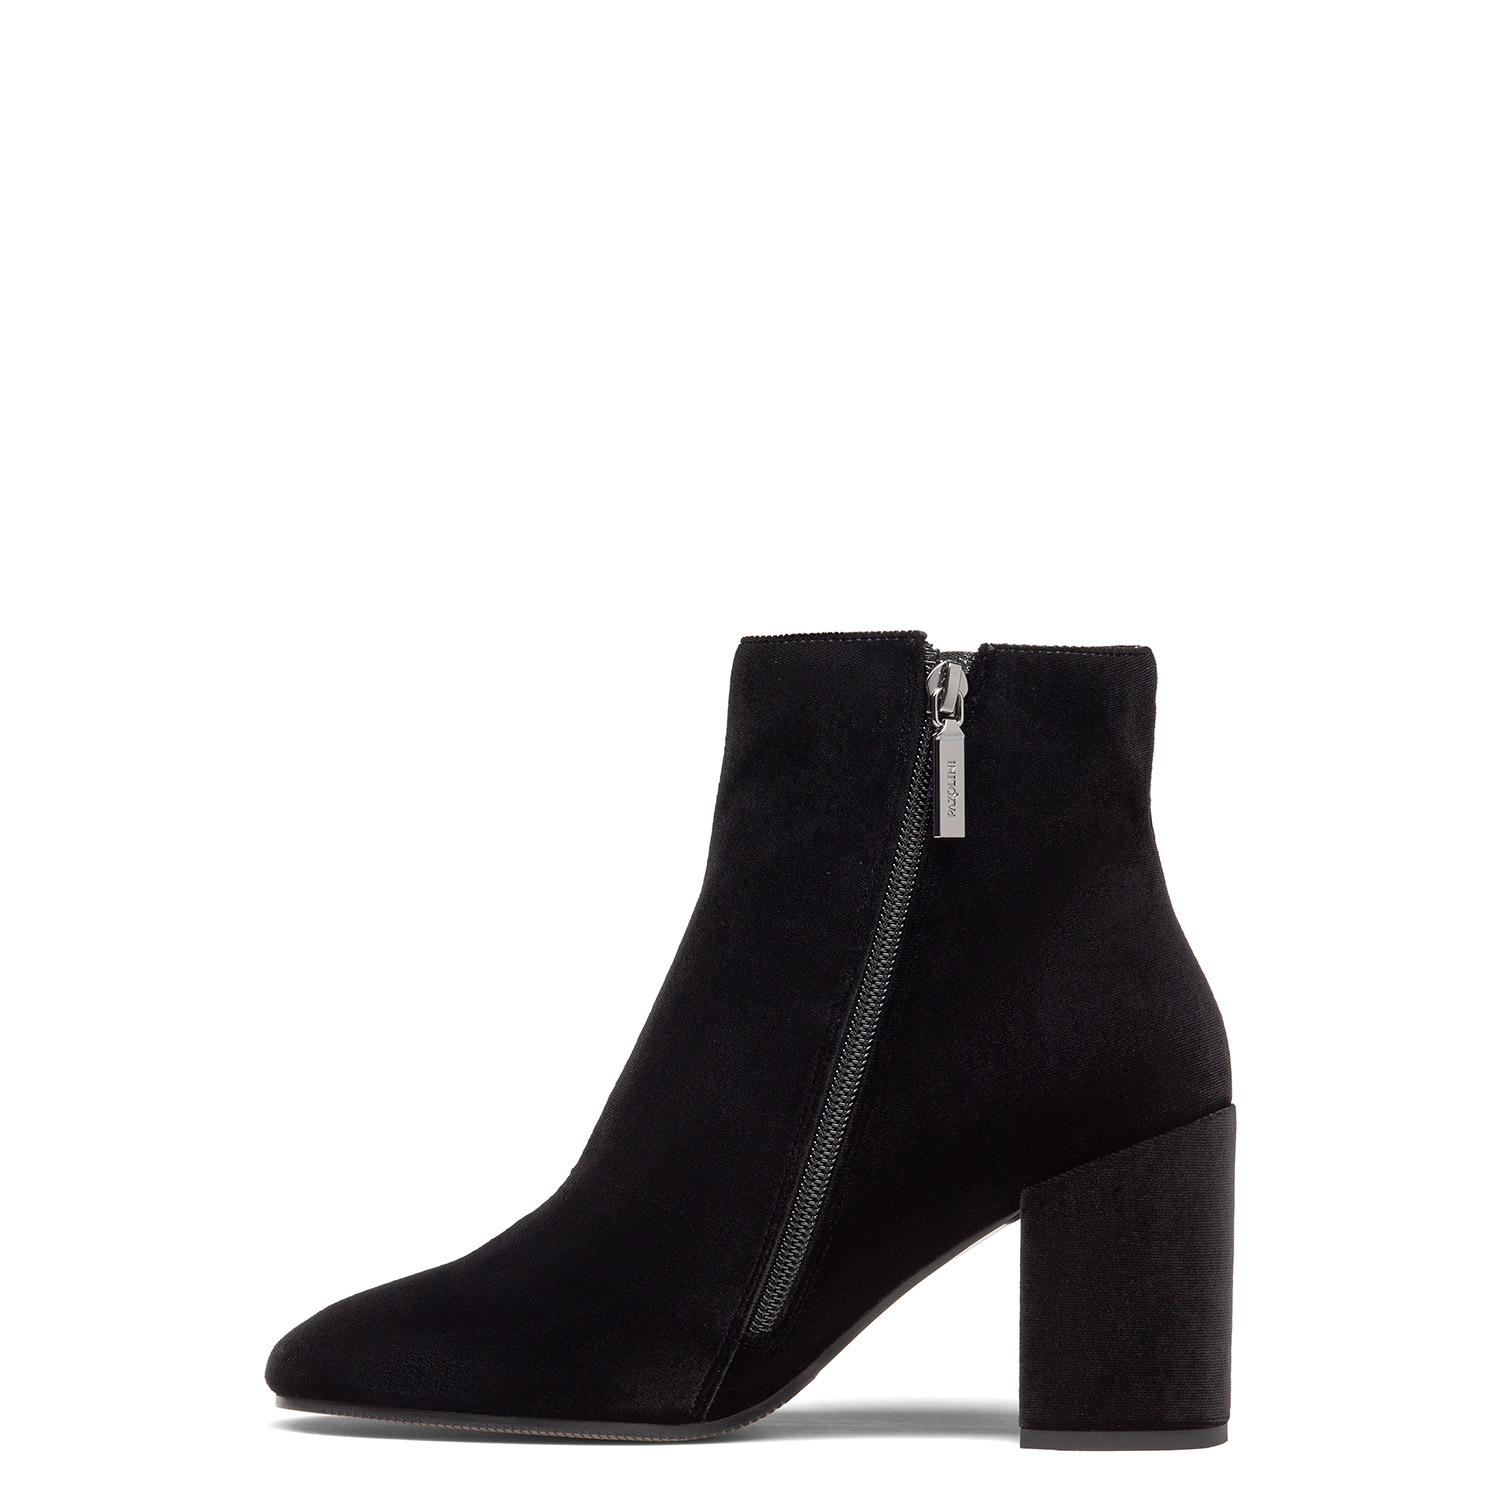 Women's ankle boots PAZOLINI WN-IVV1-1T